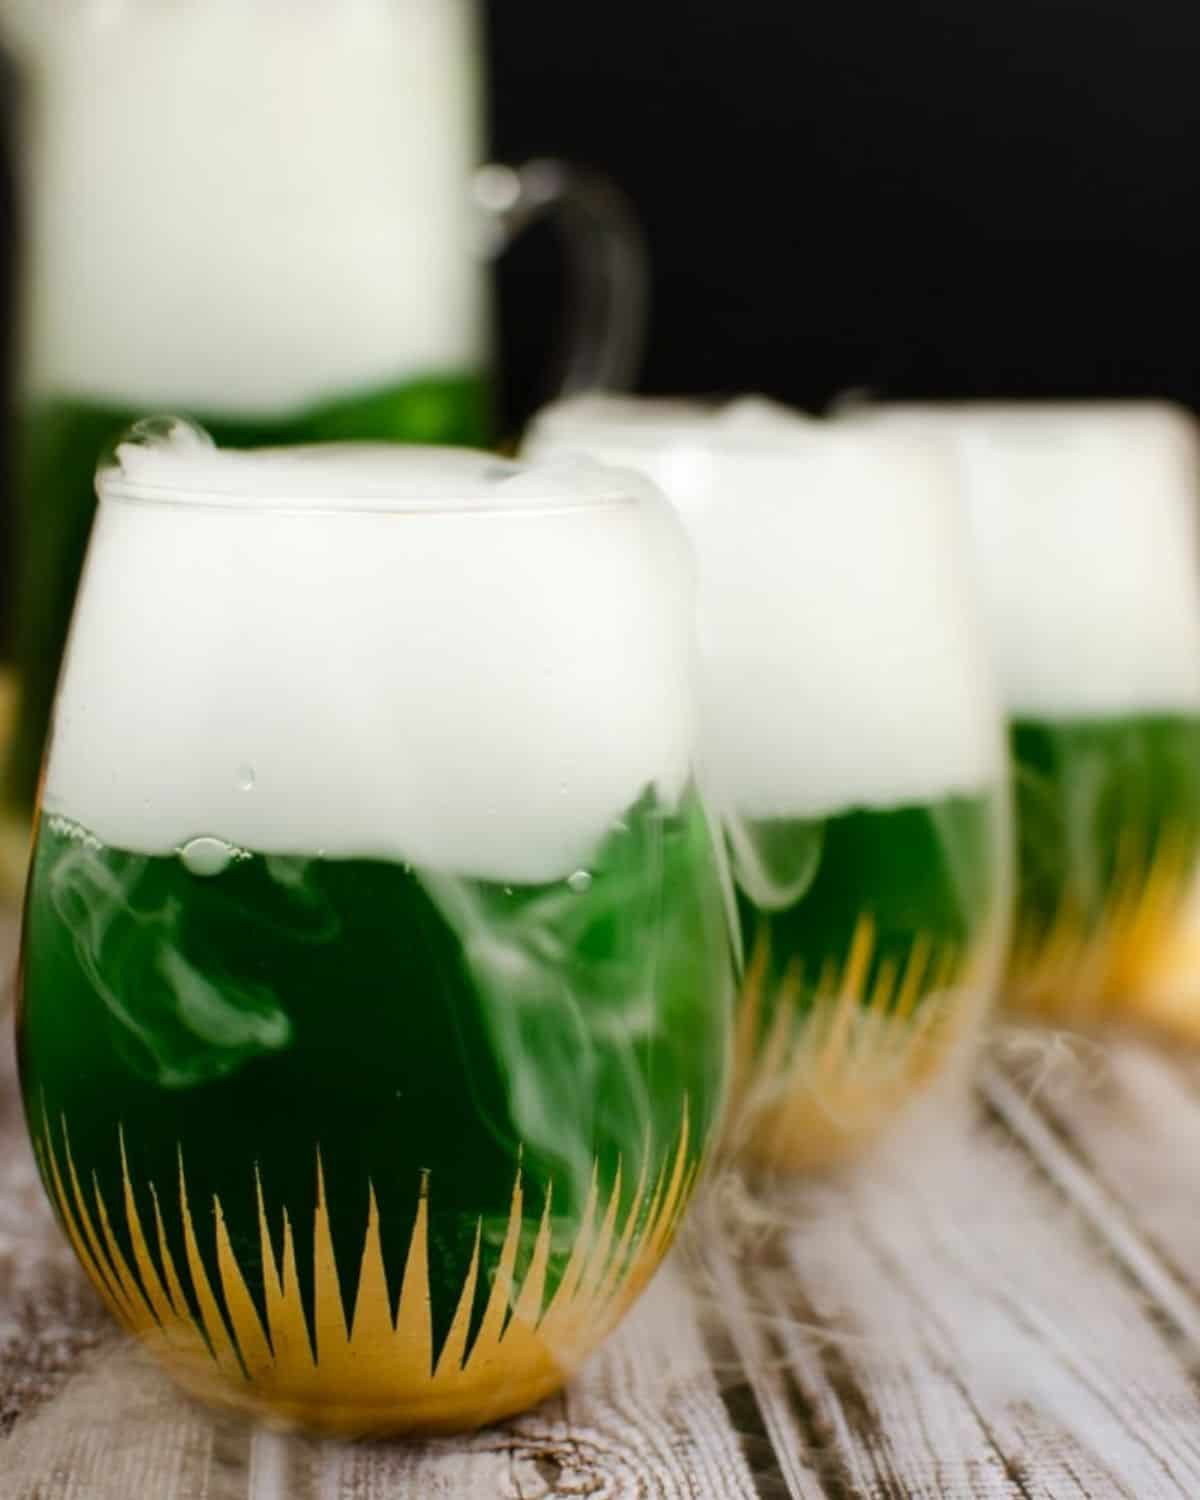 A festive green cocktail for Halloween with smoking dry ice coming out of the glass